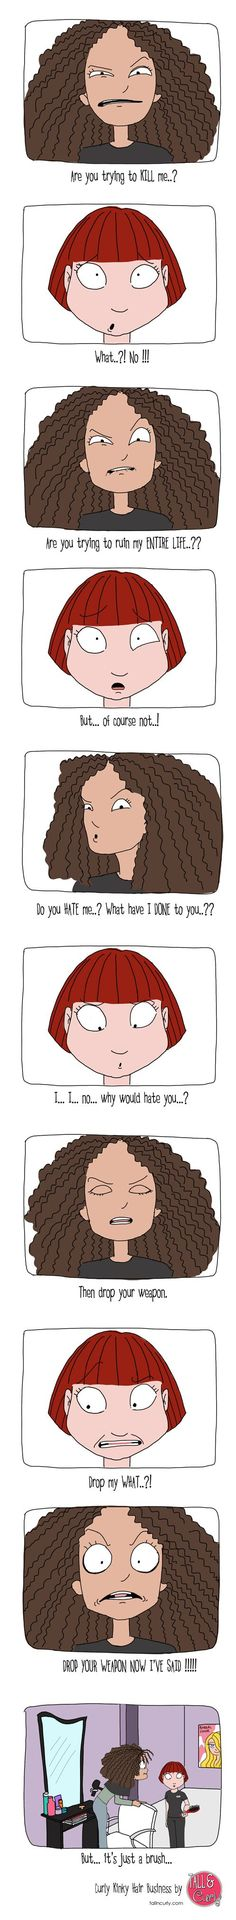 """Threatened"" - so funny! #naturalhaircomics:"